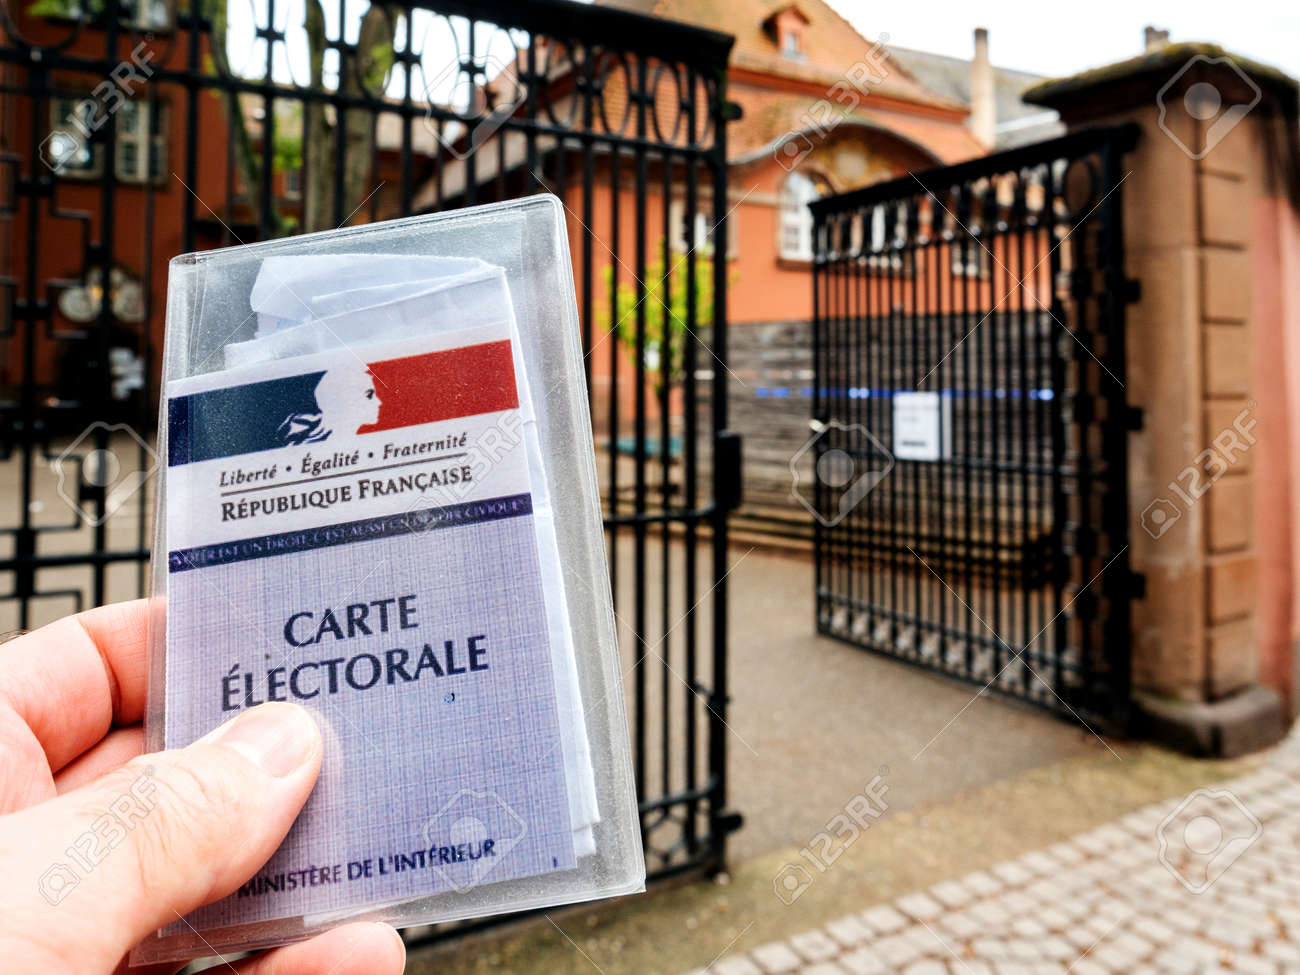 Strasbourg france 7 mai 2017: homme tenant carte electorale